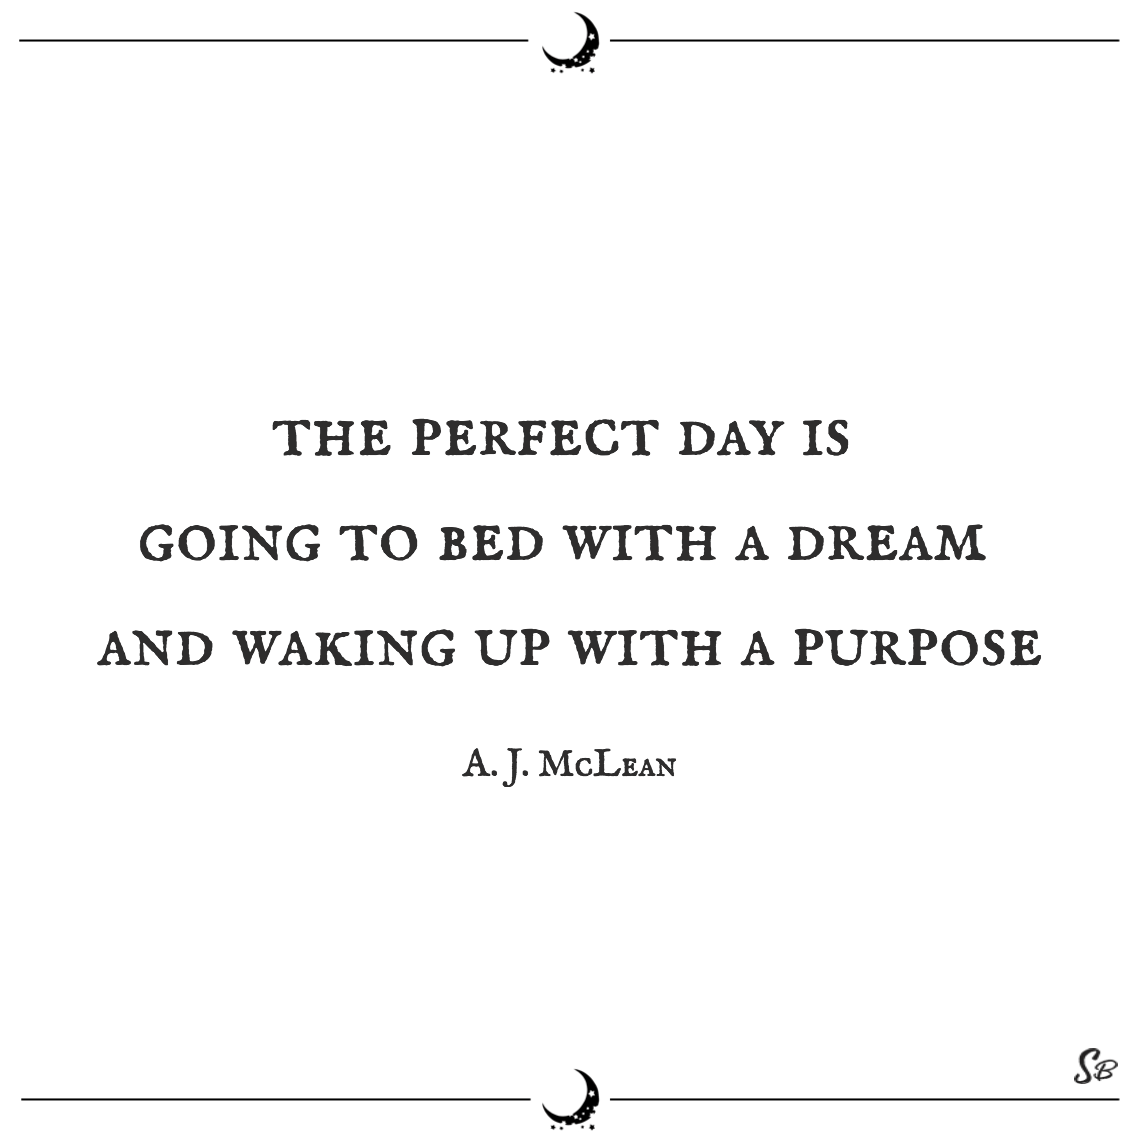 The perfect day is going to bed with a dream and waking up with a purpose. a. j. mclean